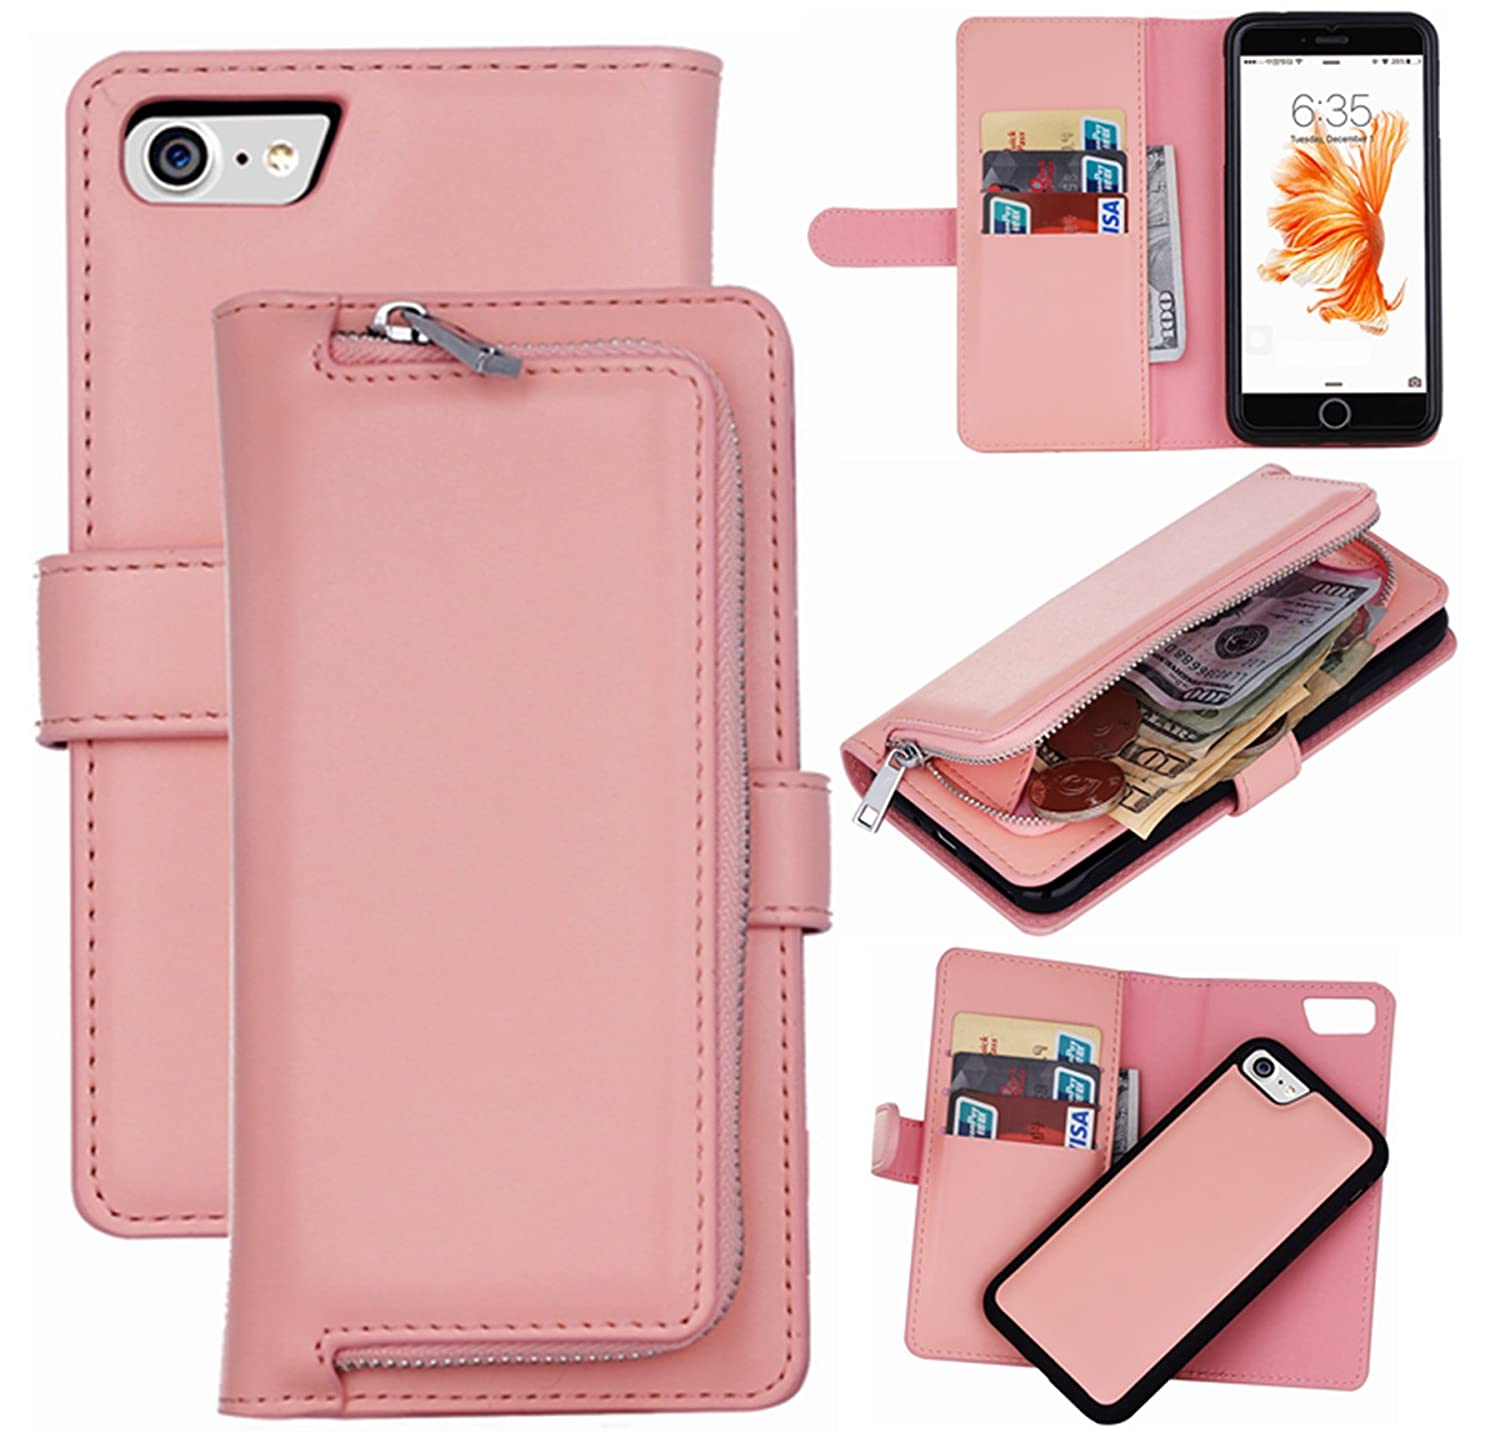 0ef1a1a55356 iPhone 8 Wallet Case,iPhone 7 Case, Hynice Magnetic Detachable PU Leather  Purse for Women Men with Zipper Removable Shock-Absorption Back Cover  Credit ...